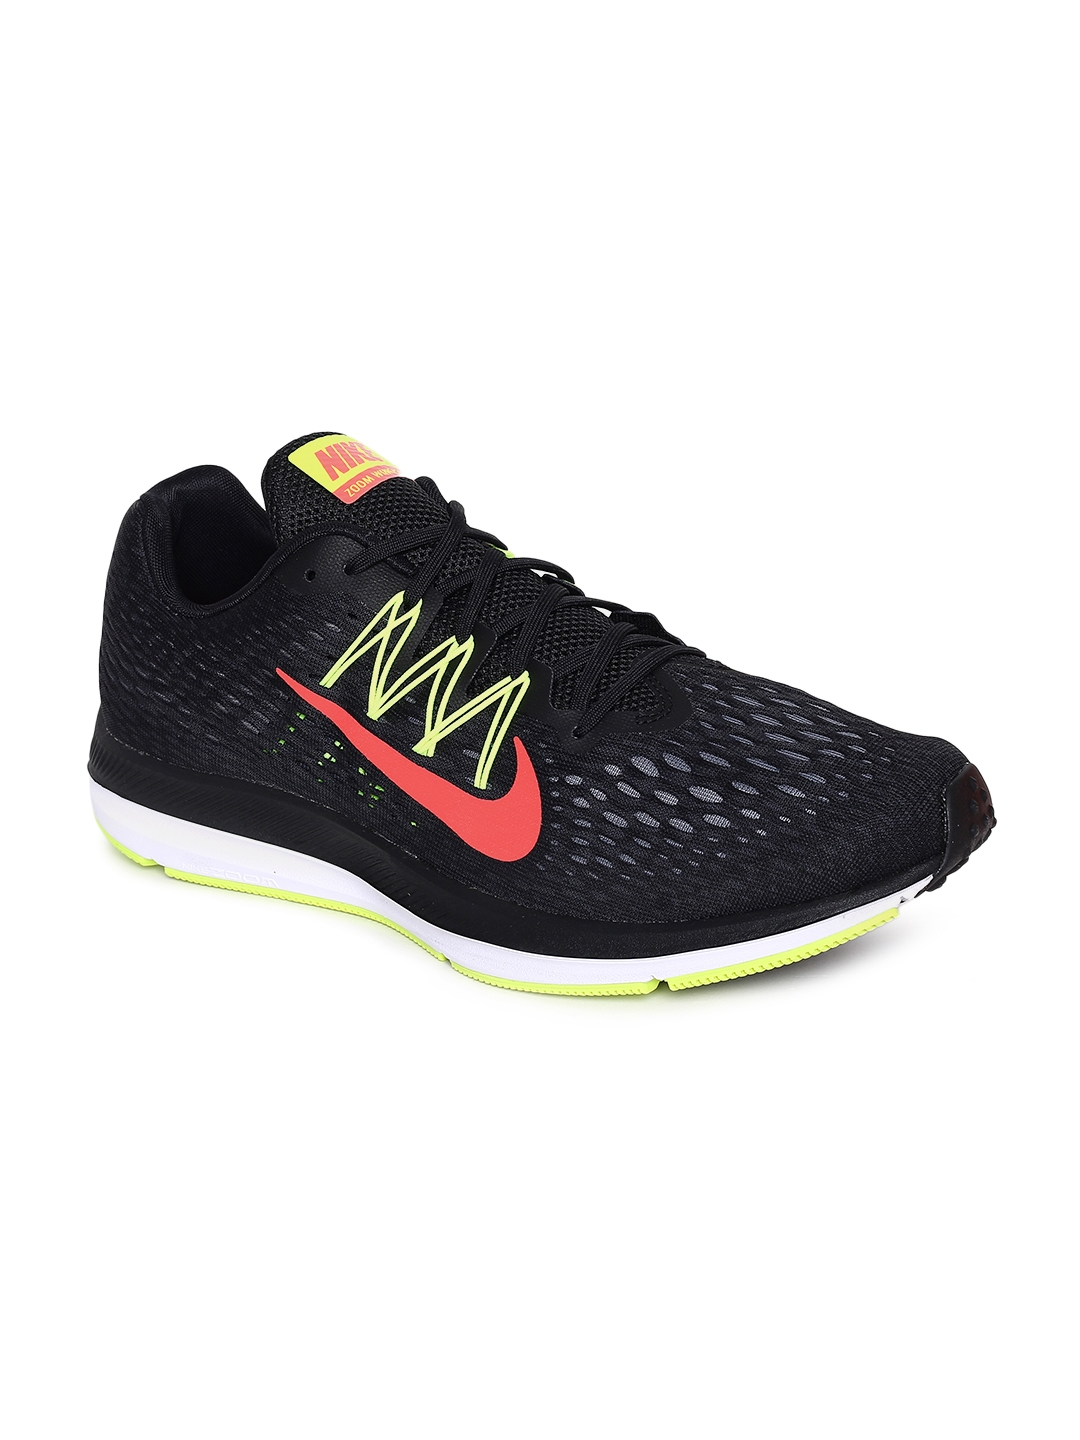 050be9c0b1a Buy Nike Men Black Air Zoom Winflo 5 Running Shoes - Sports Shoes ...